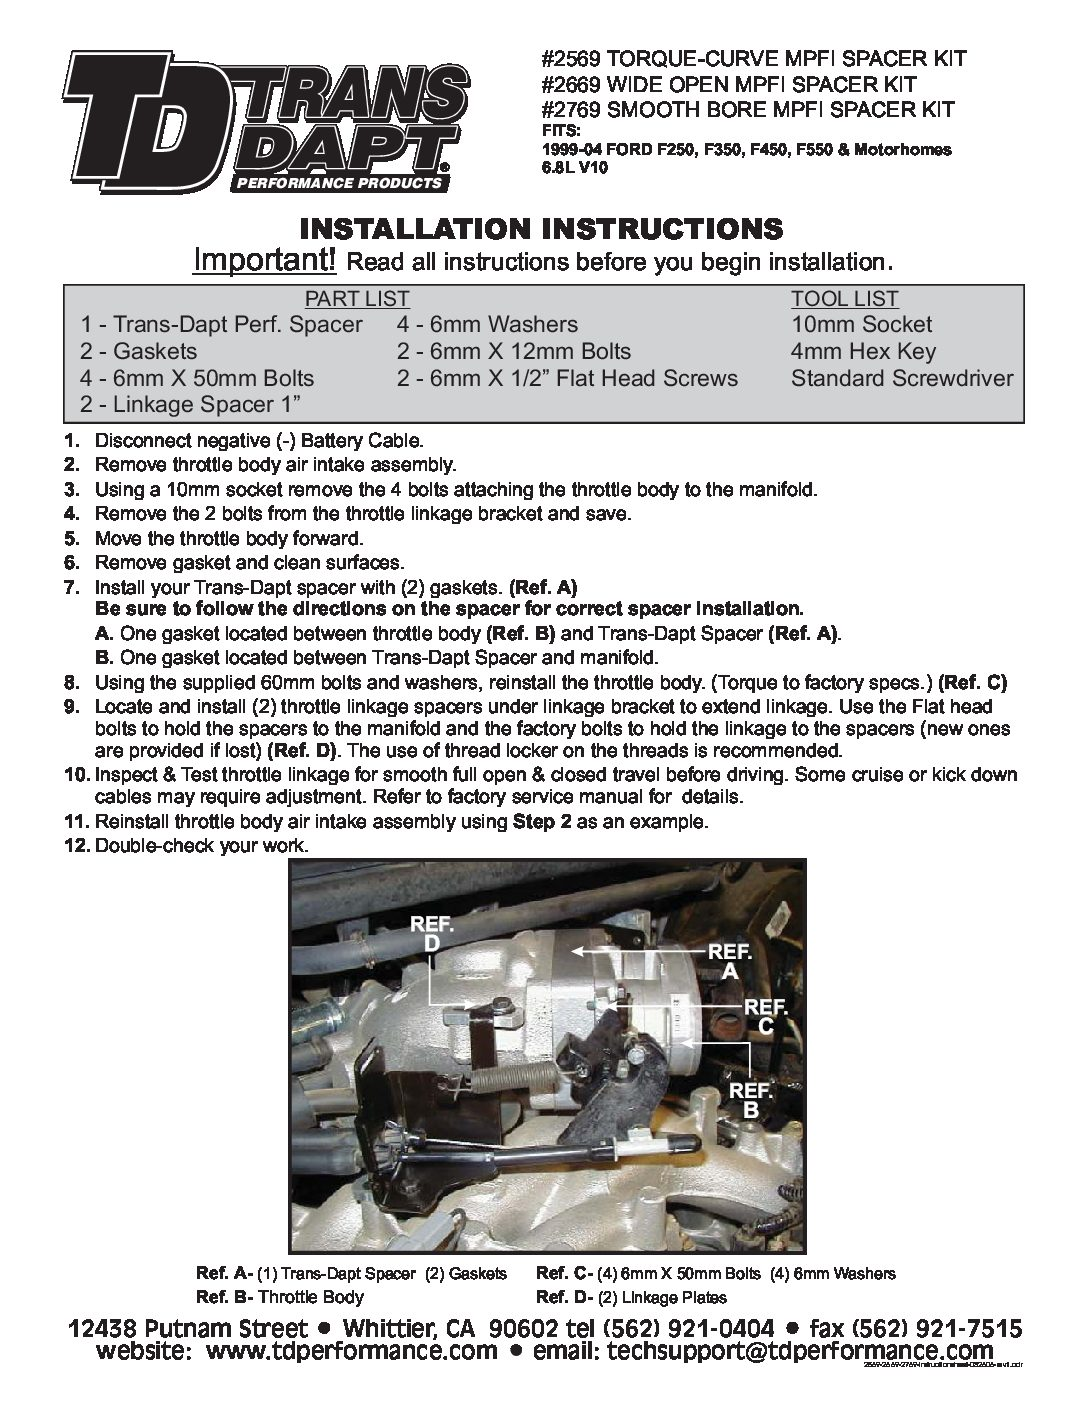 2001 Ford F-250 XLT Owner's Manual Owner's Manual